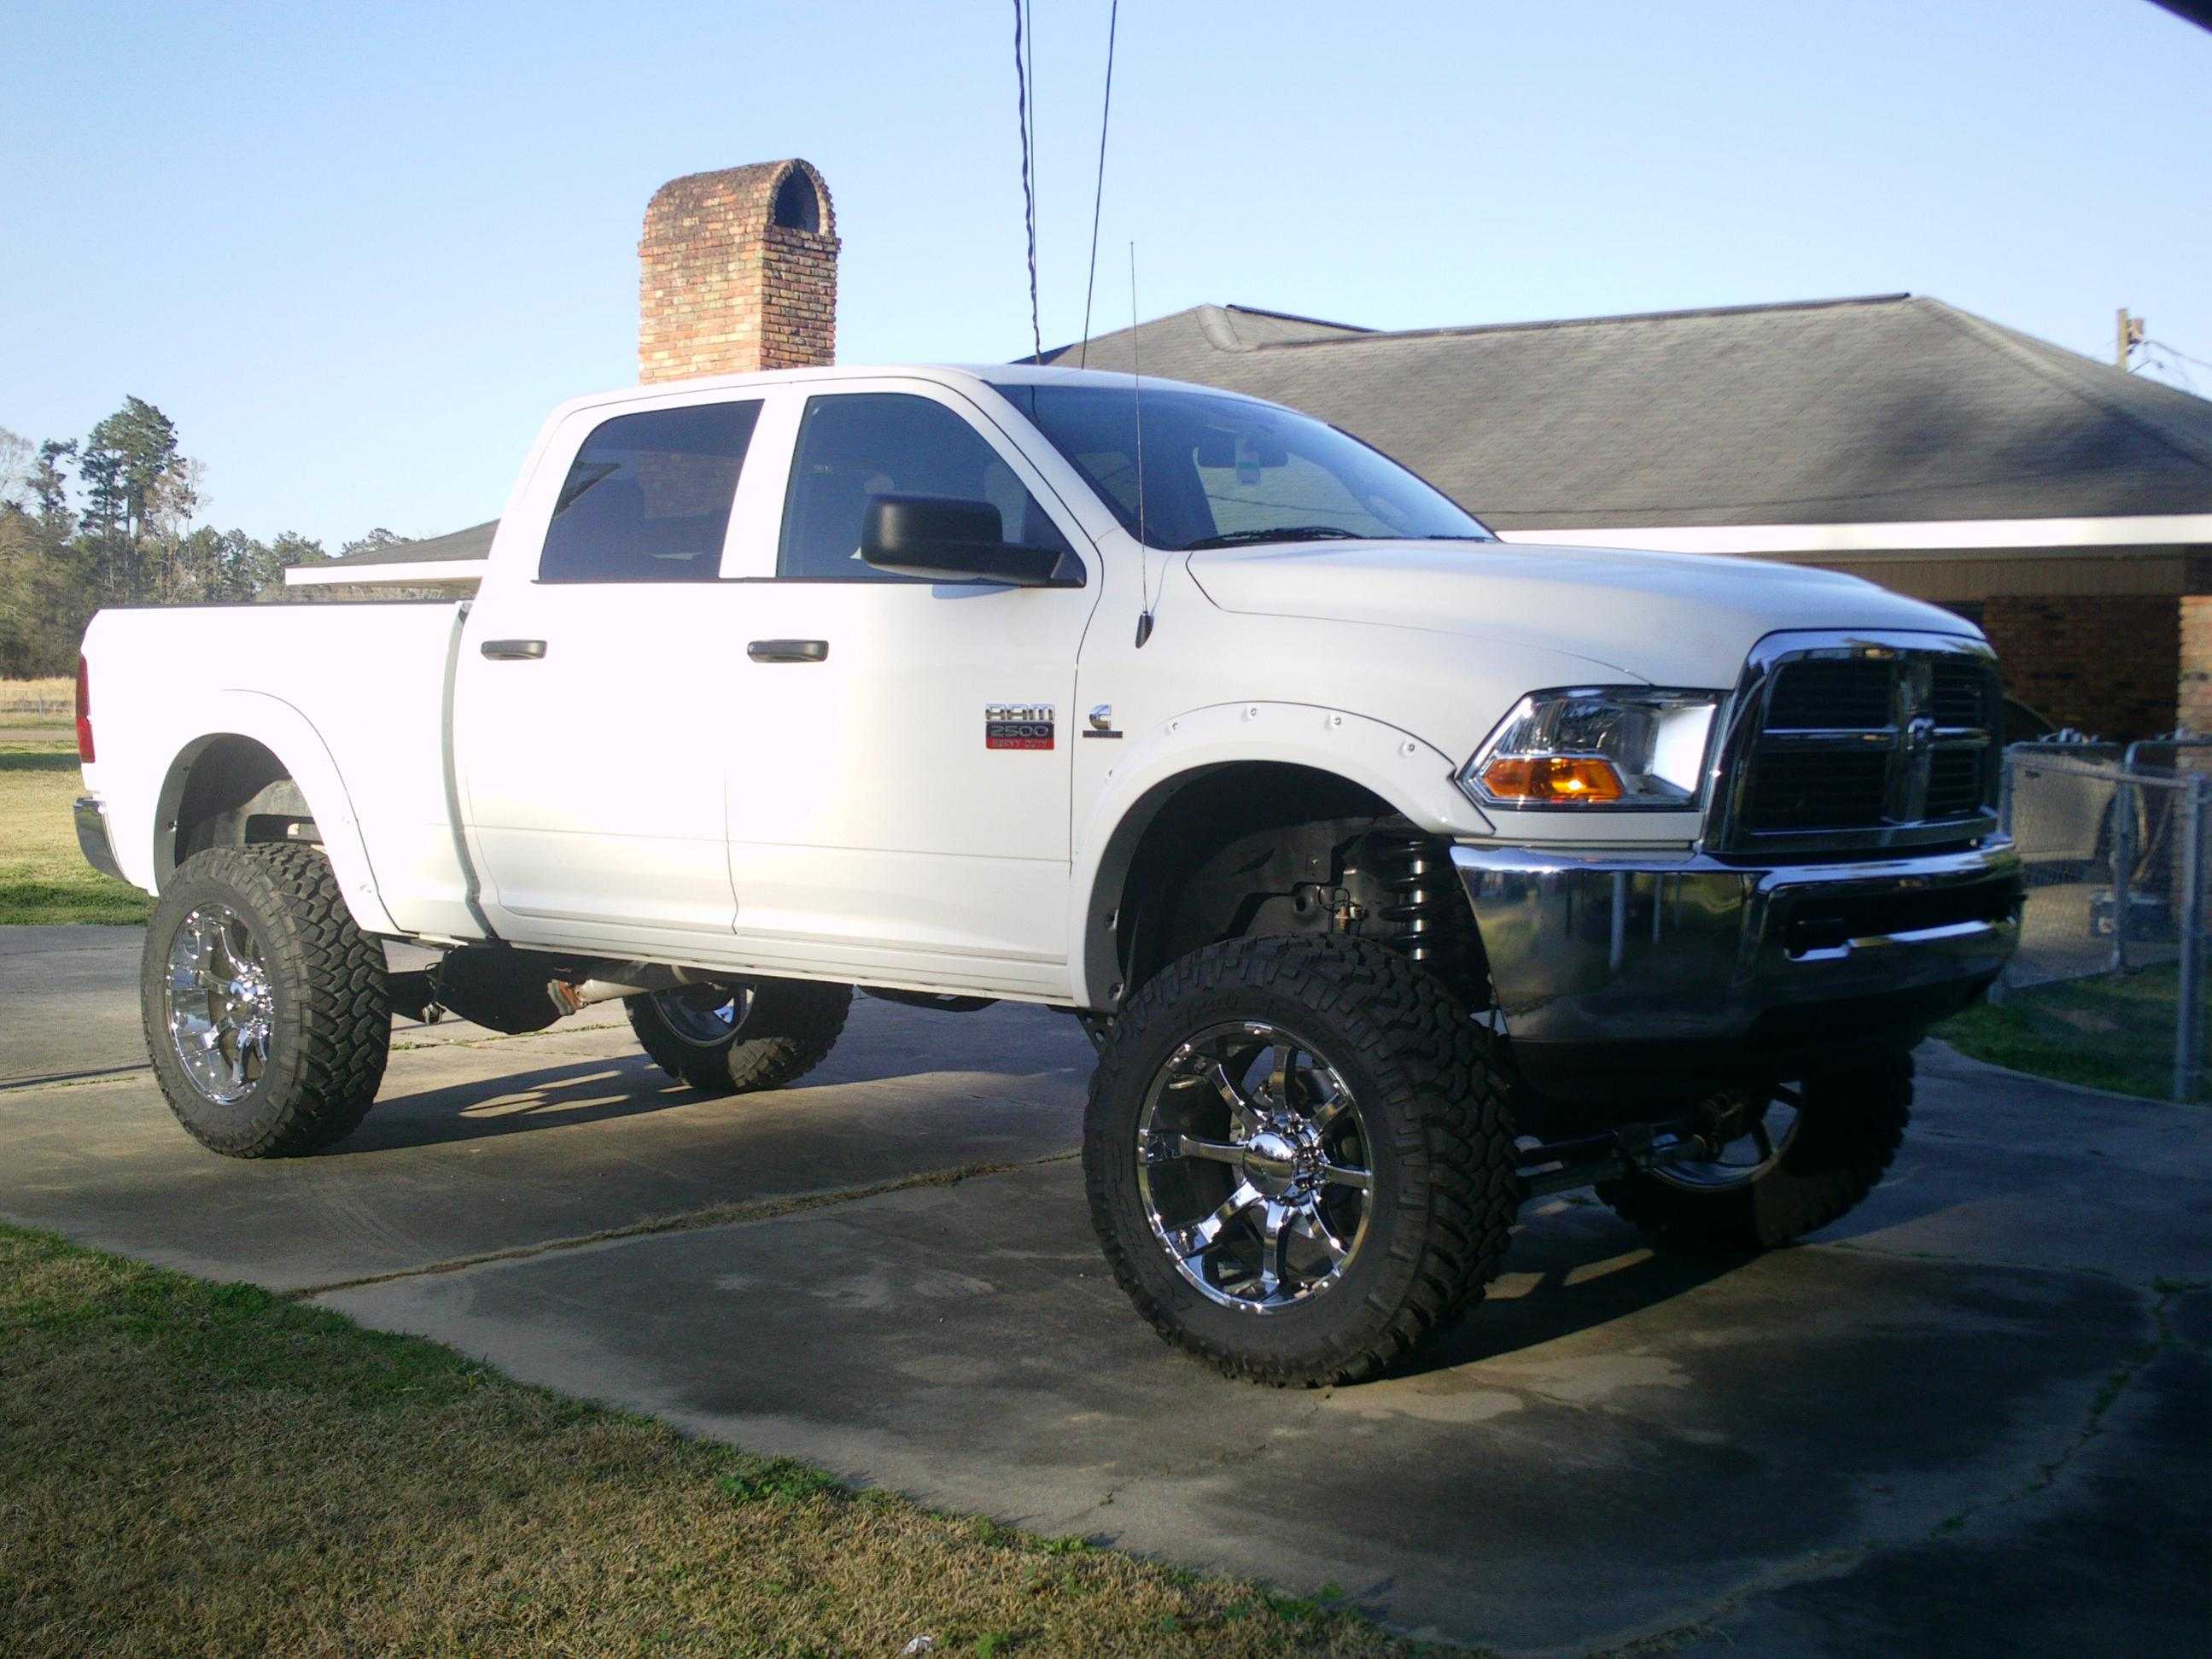 cummins on pinterest dodge rams lifted dodge and dodge ram lifted - White Dodge Ram Cummins Lifted